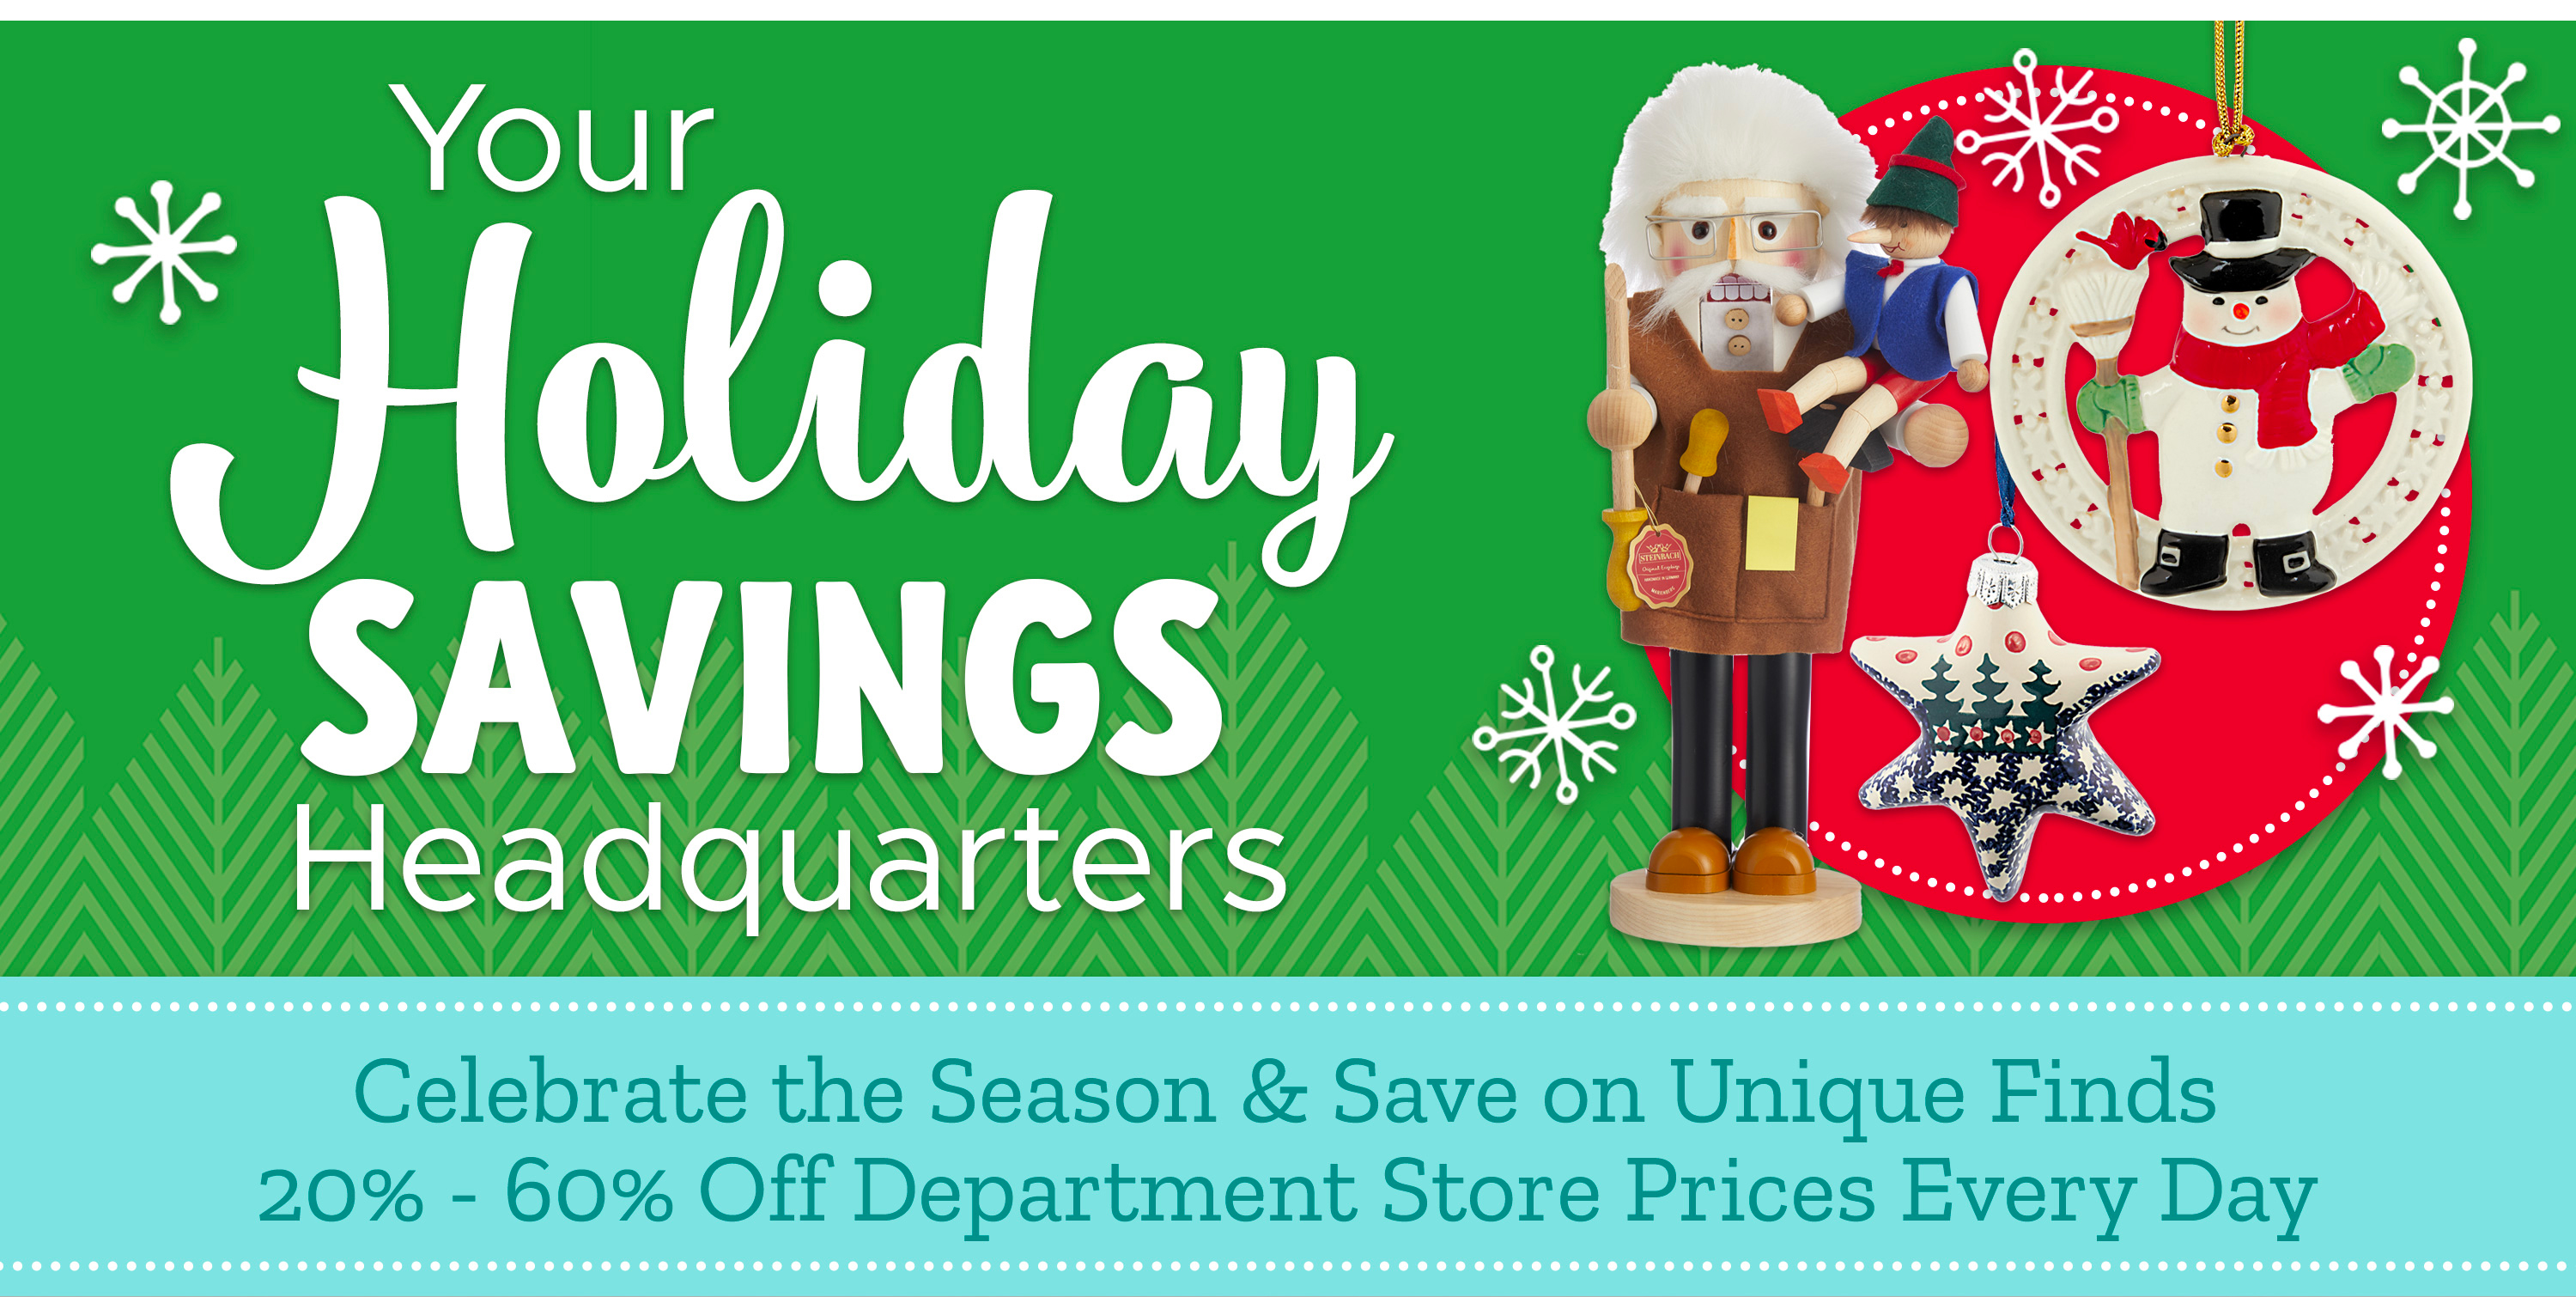 Your Holiday Savings Headquarters